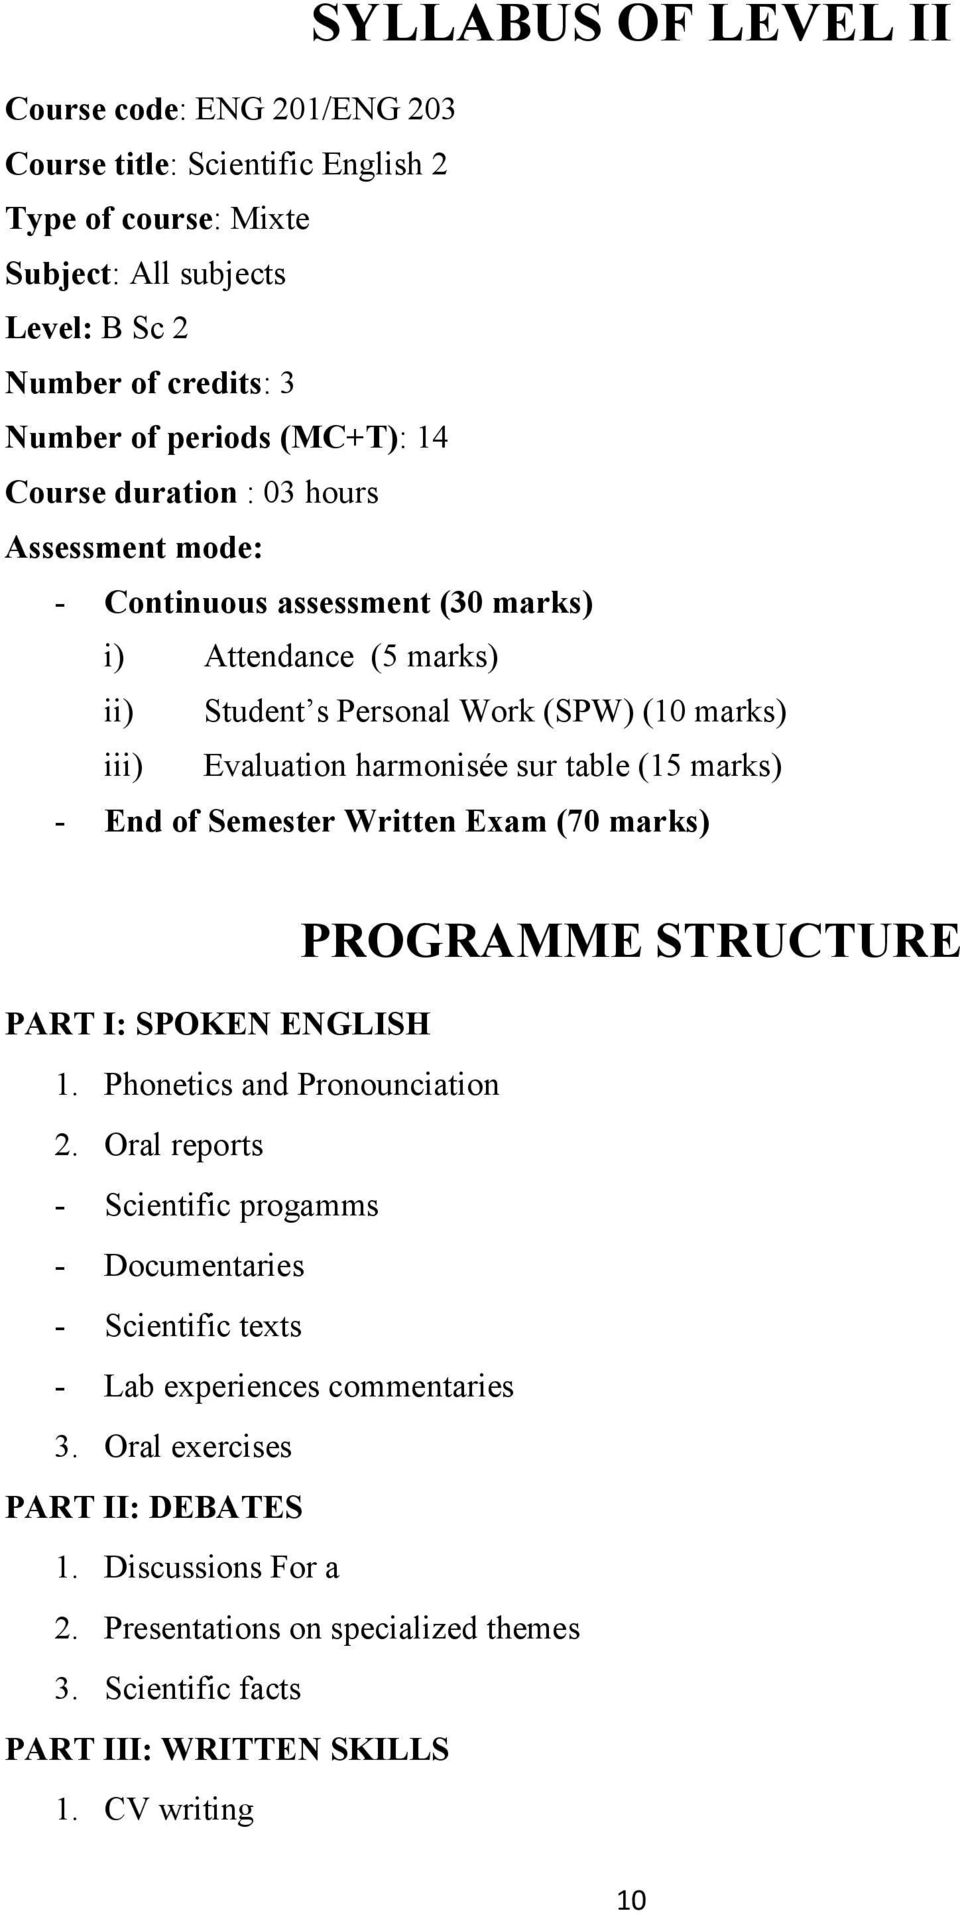 marks) - End of Semester Written Exam (70 marks) PART I: SPOKEN ENGLISH 1. Phonetics and Pronounciation 2.